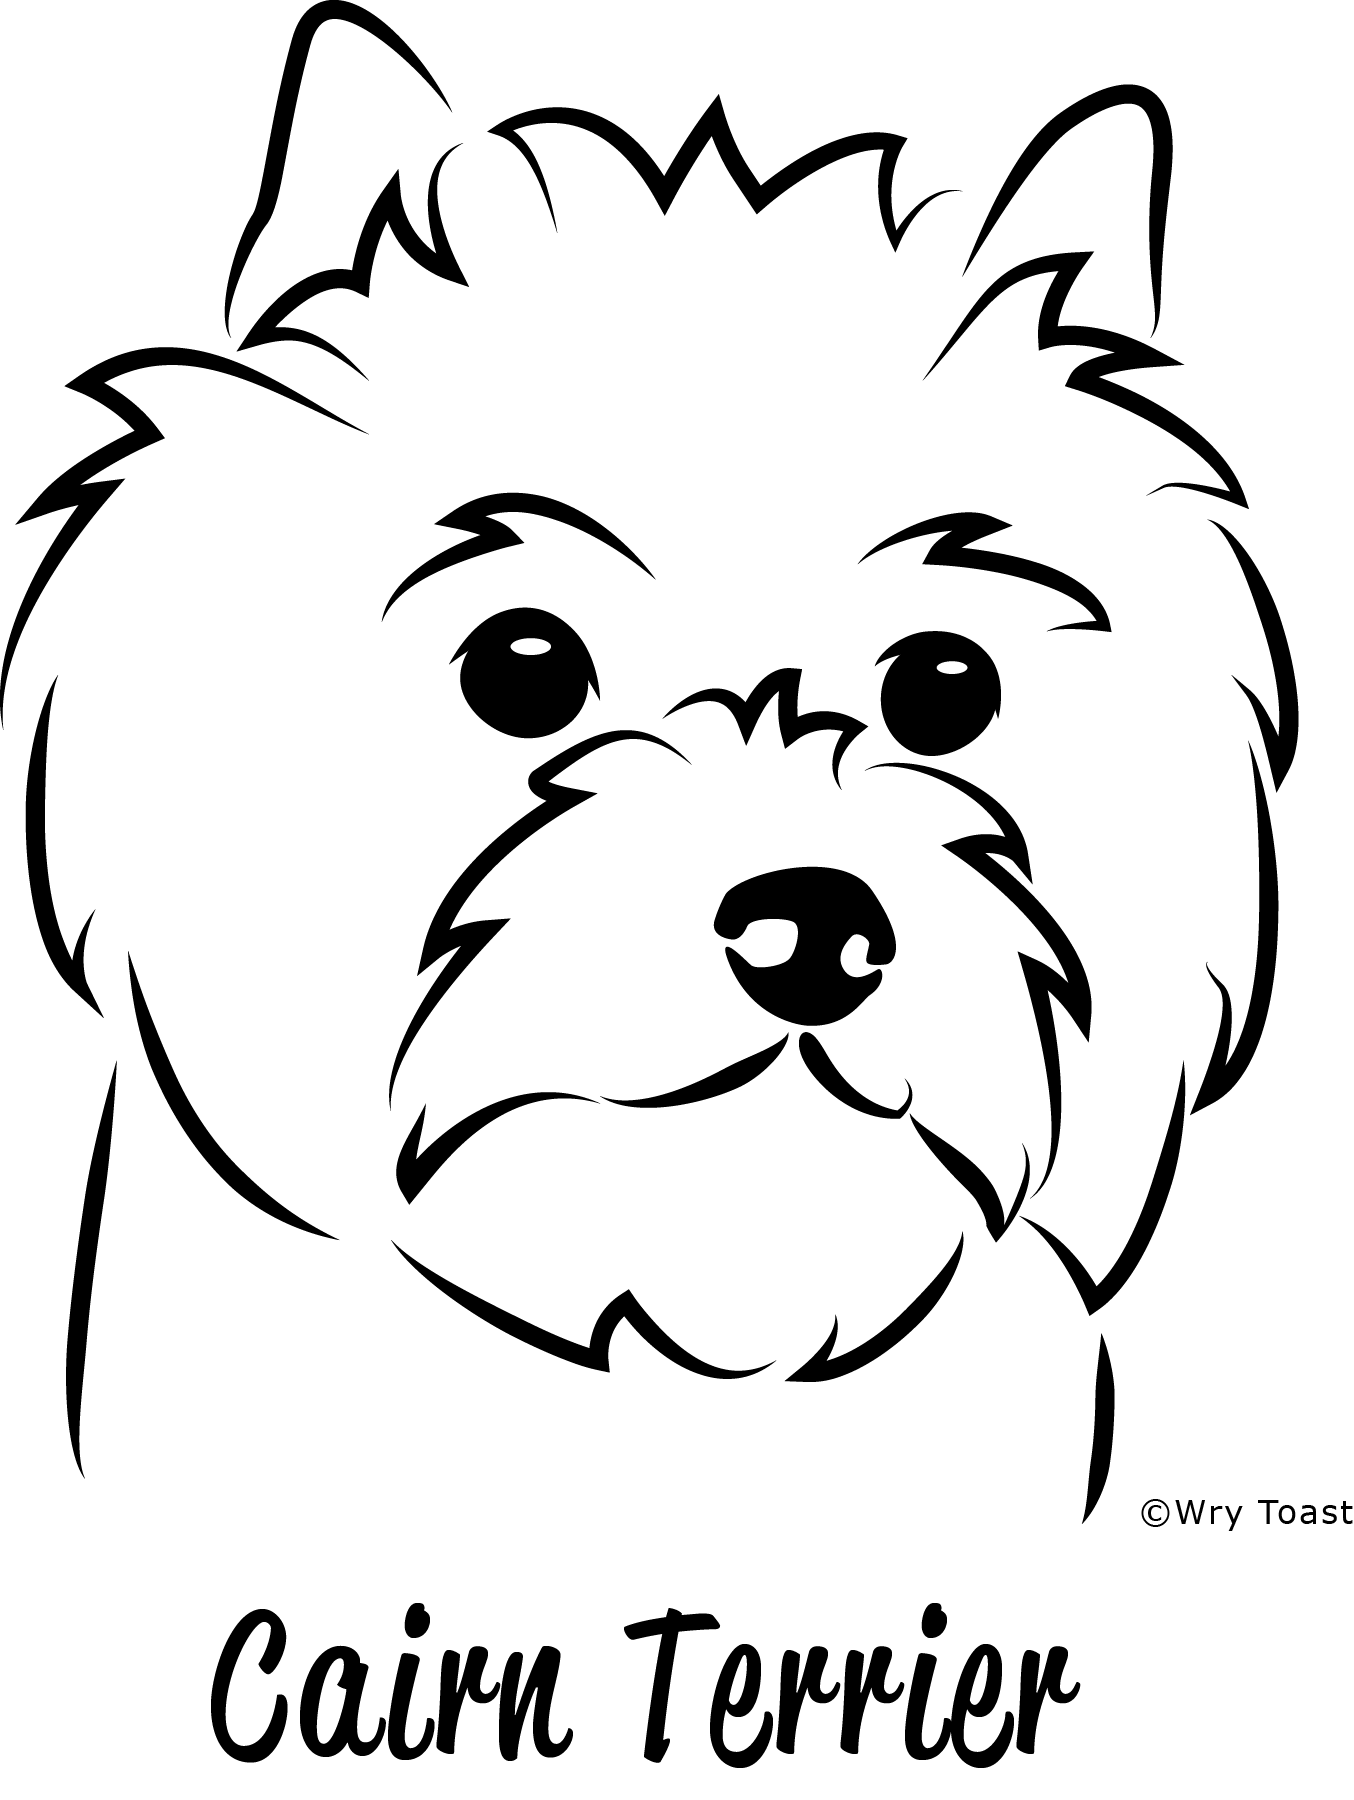 Terrier drawing basic